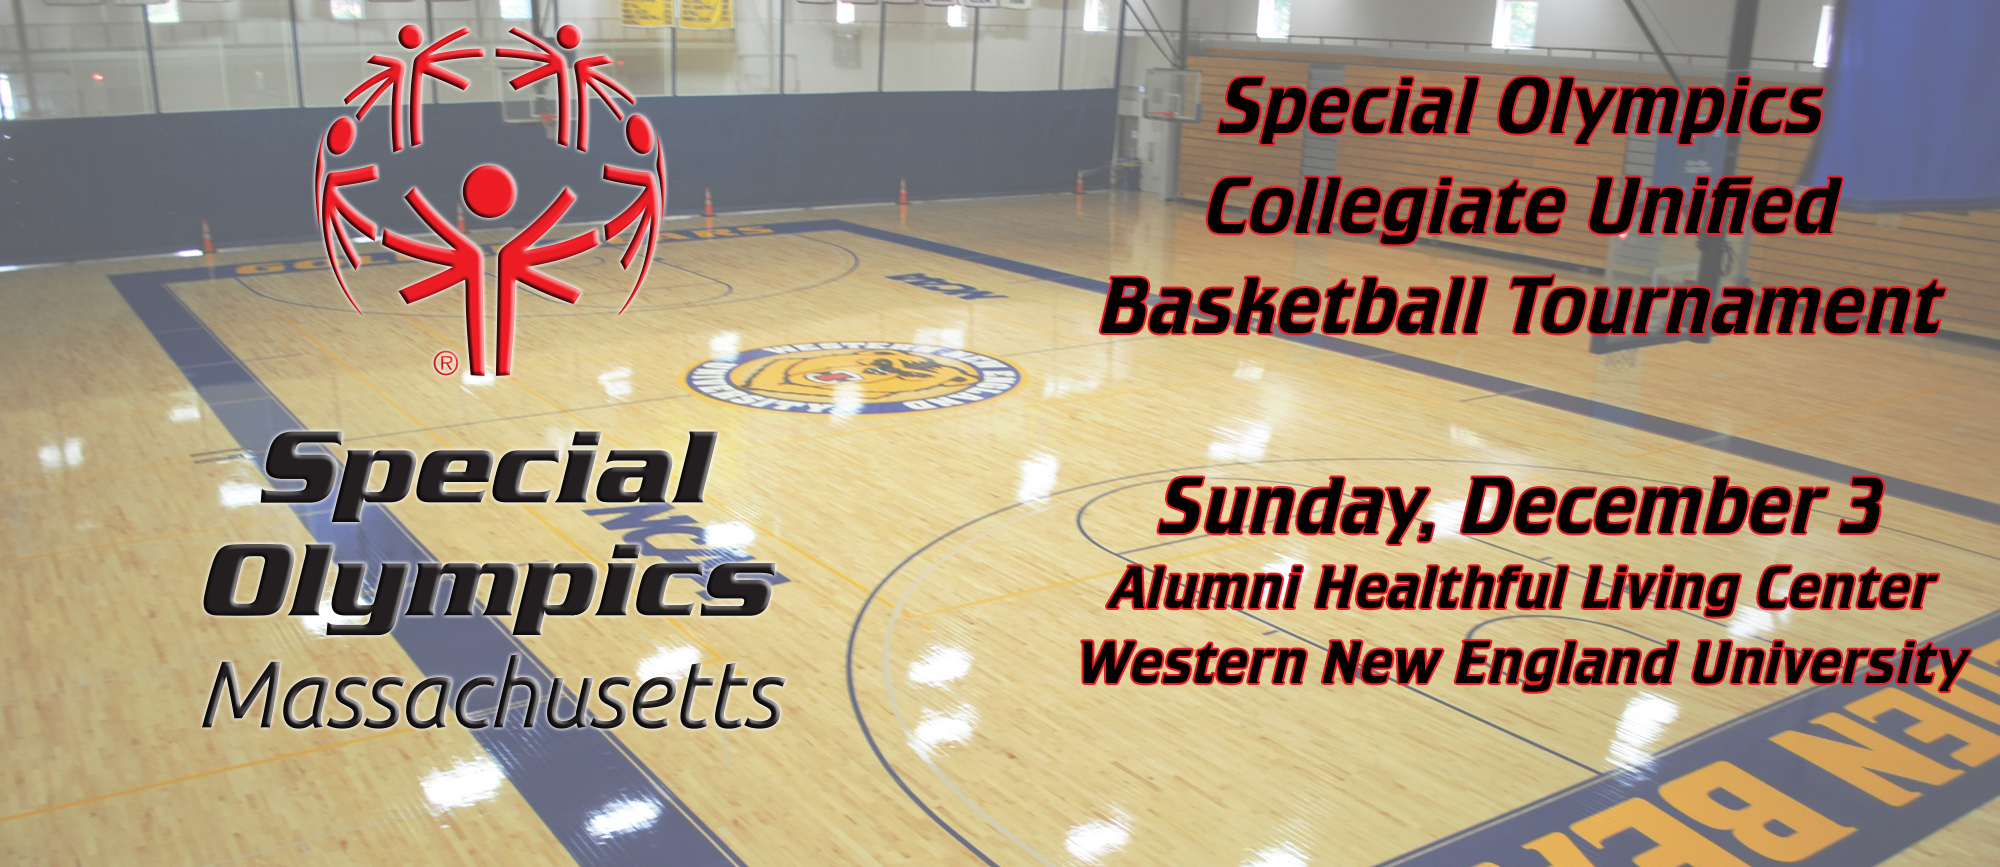 Western New England to Host First Special Olympics Collegiate Unified Basketball Tournament